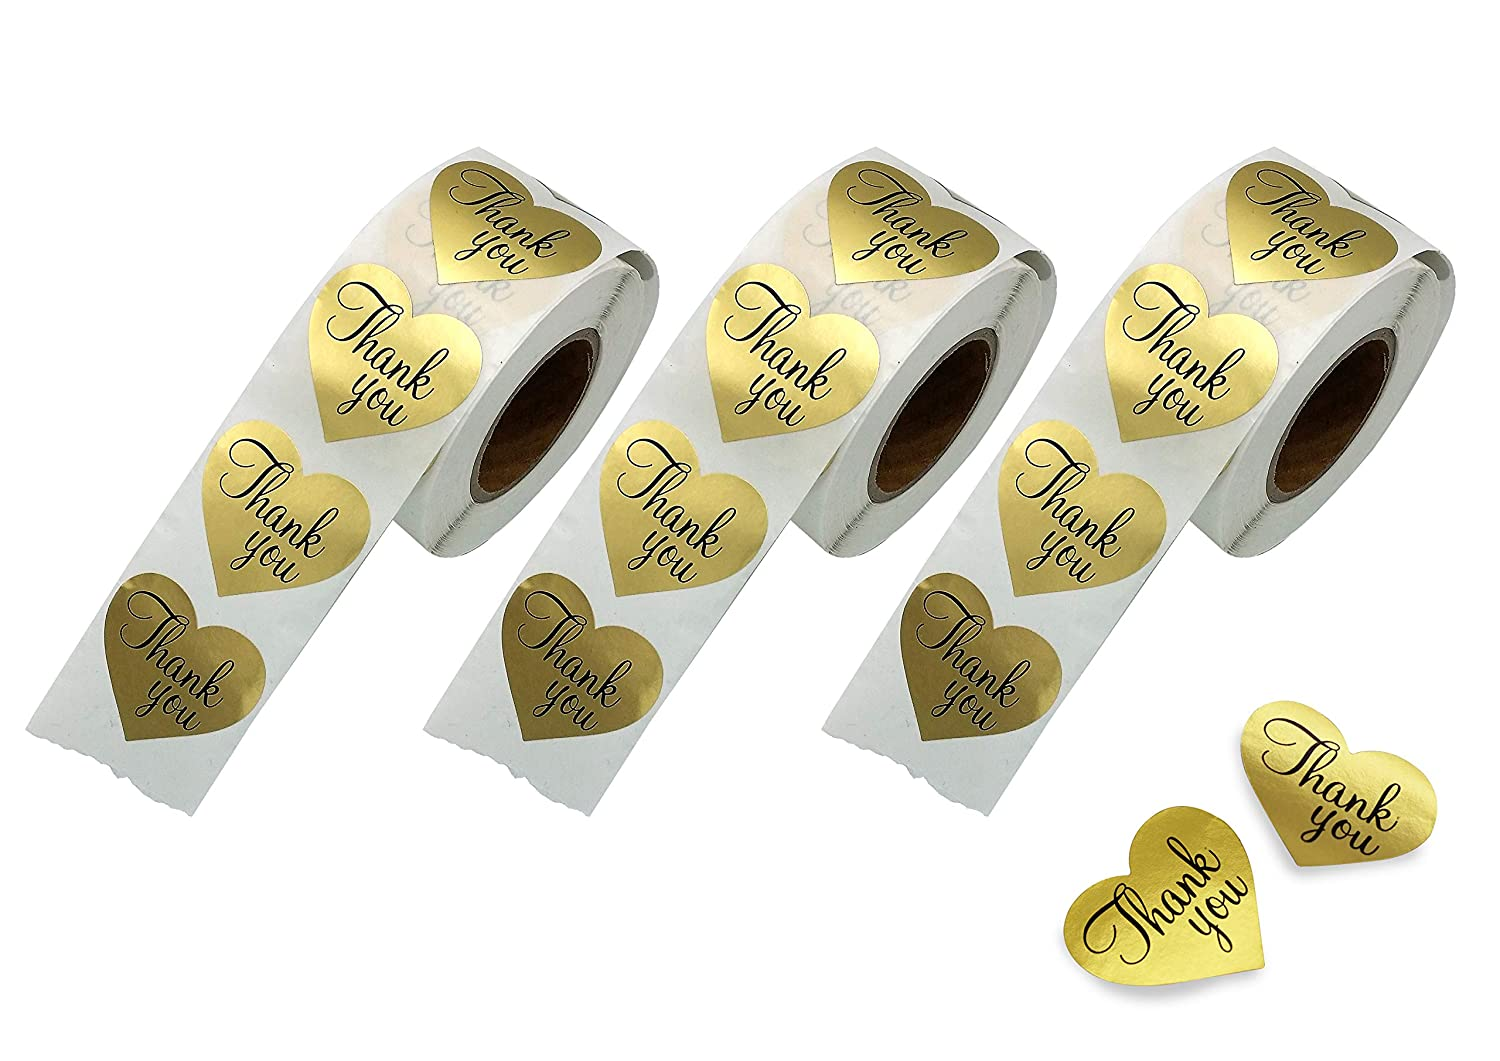 Thank You Stickers Gold Heart Shaped Foil Easy-Pull Adhesive Foil Labels  (500 Pack)